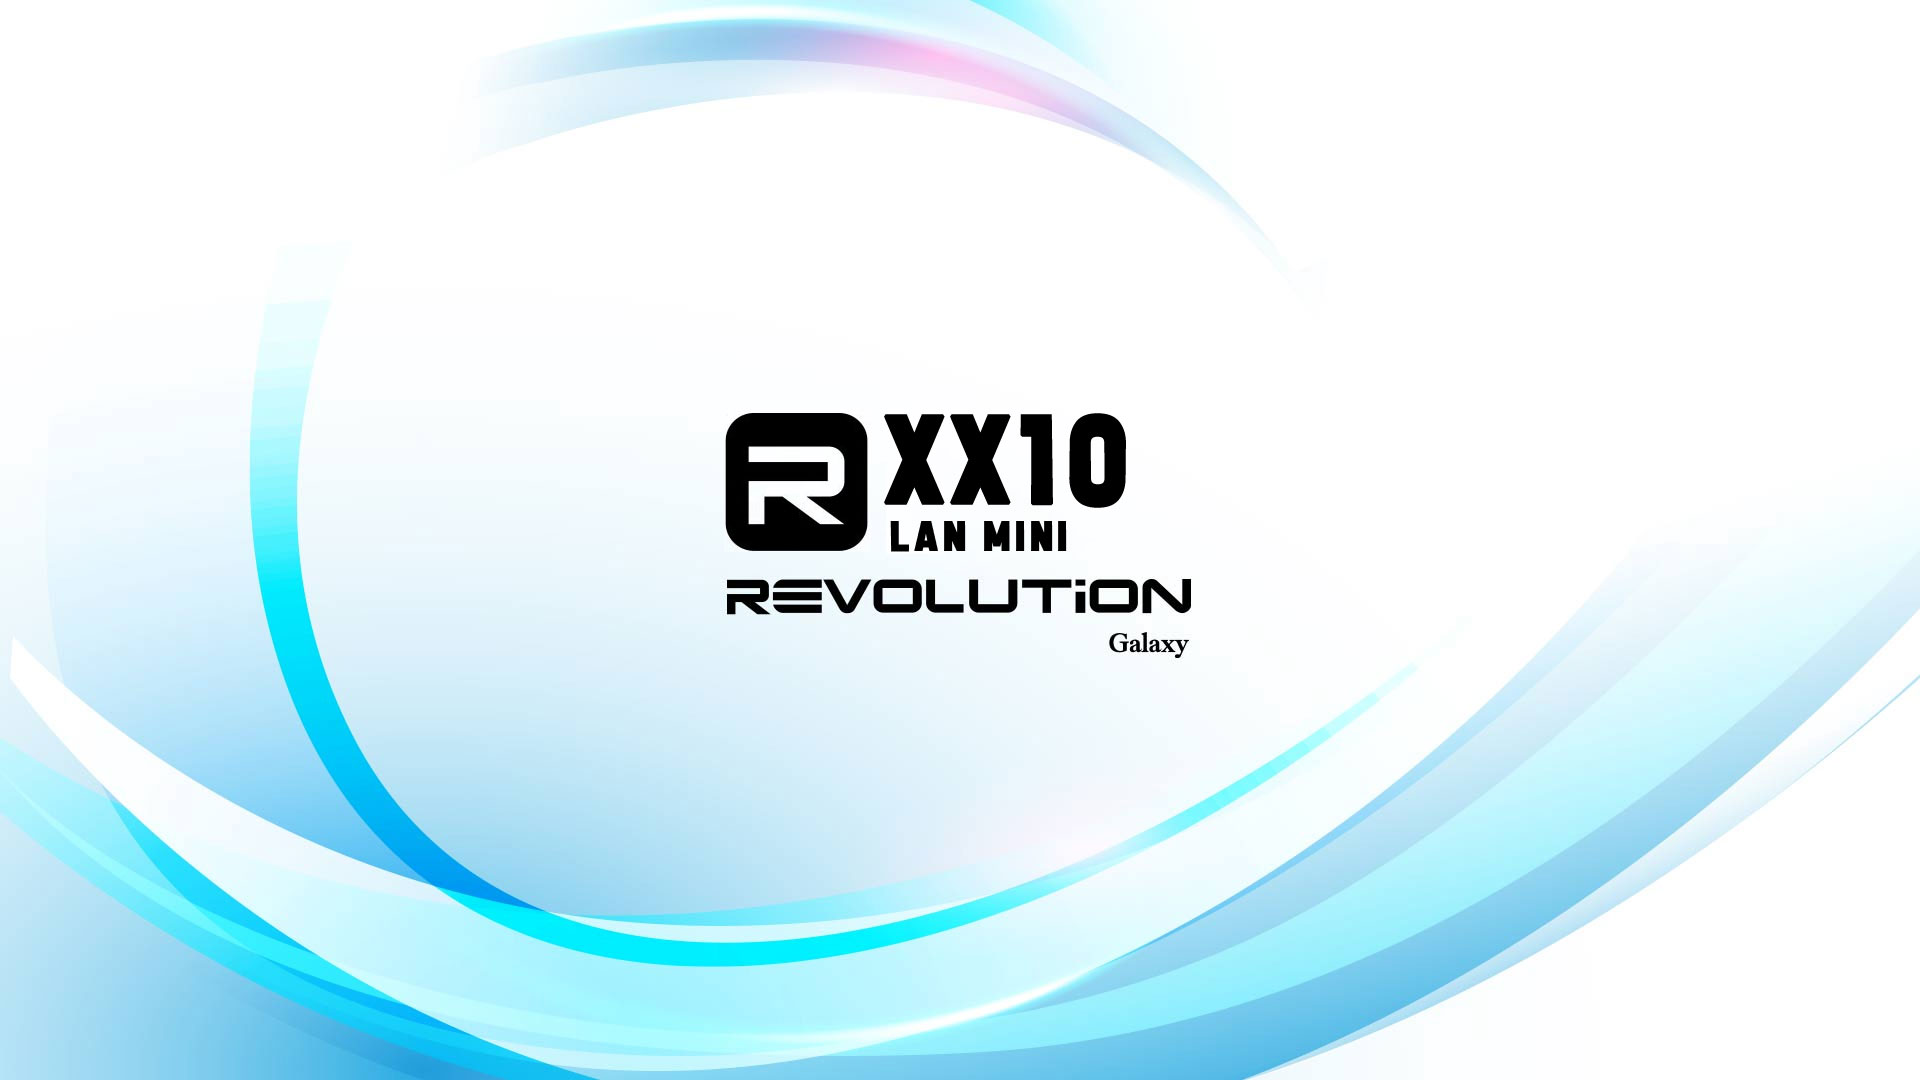 Download Firmware Revolution Galaxy XX10 Lan Mini New Software Receiver